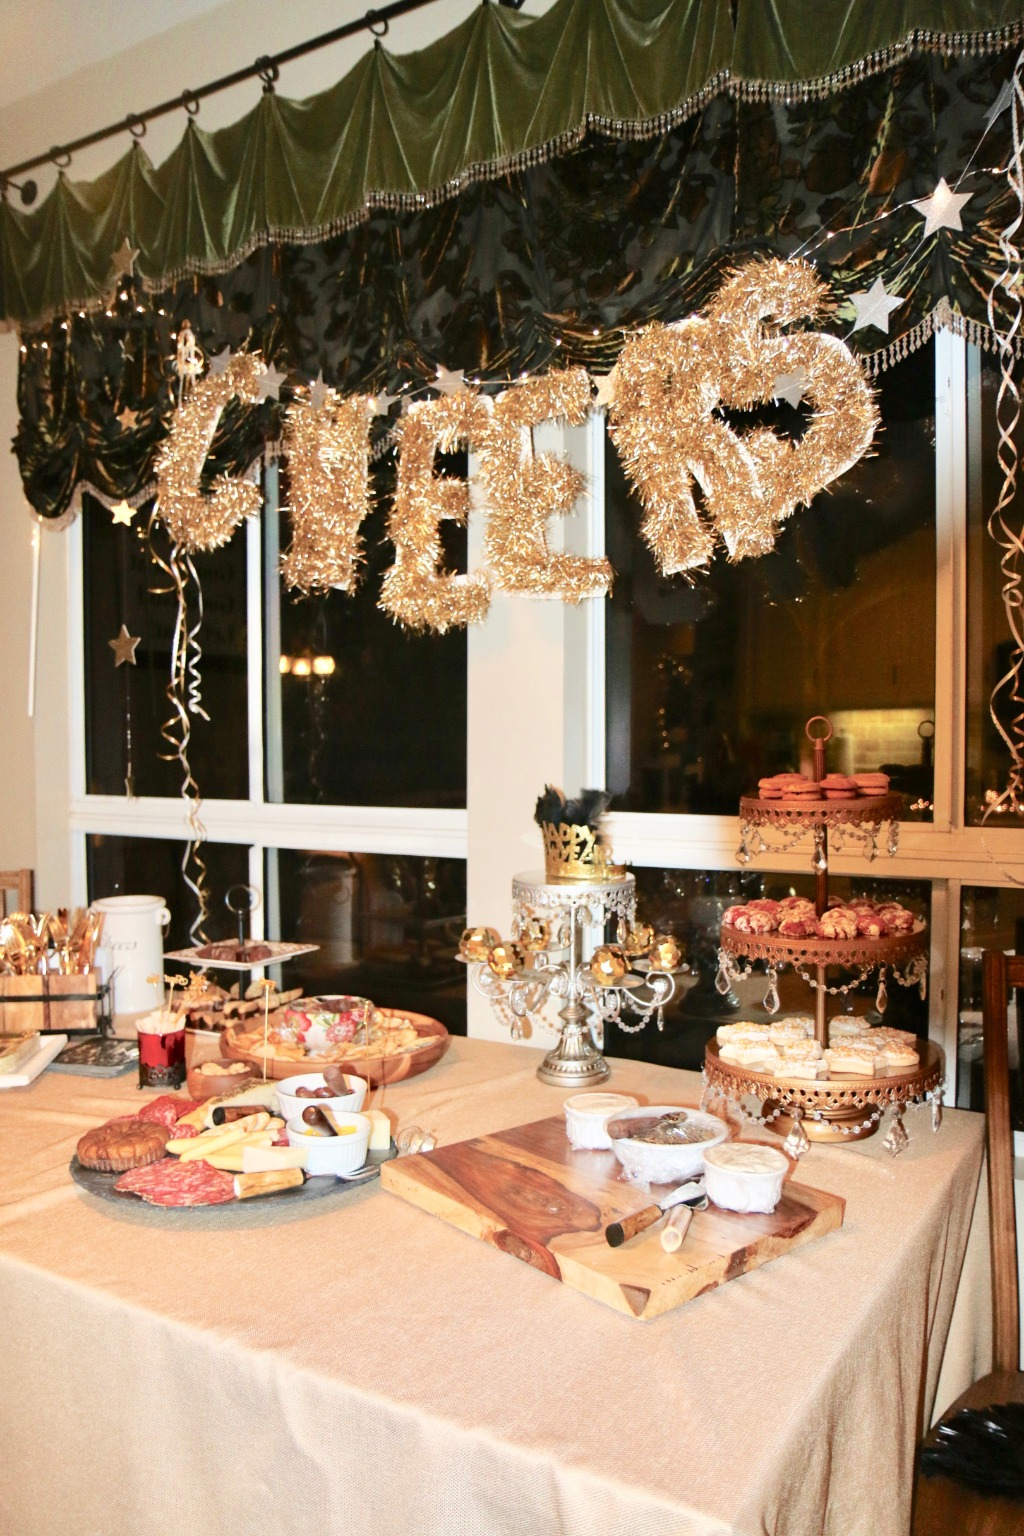 Cheers to the NEW YEARS! Chandelier Dessert Stands created by Opulent Treasures for all your dessert table needs!